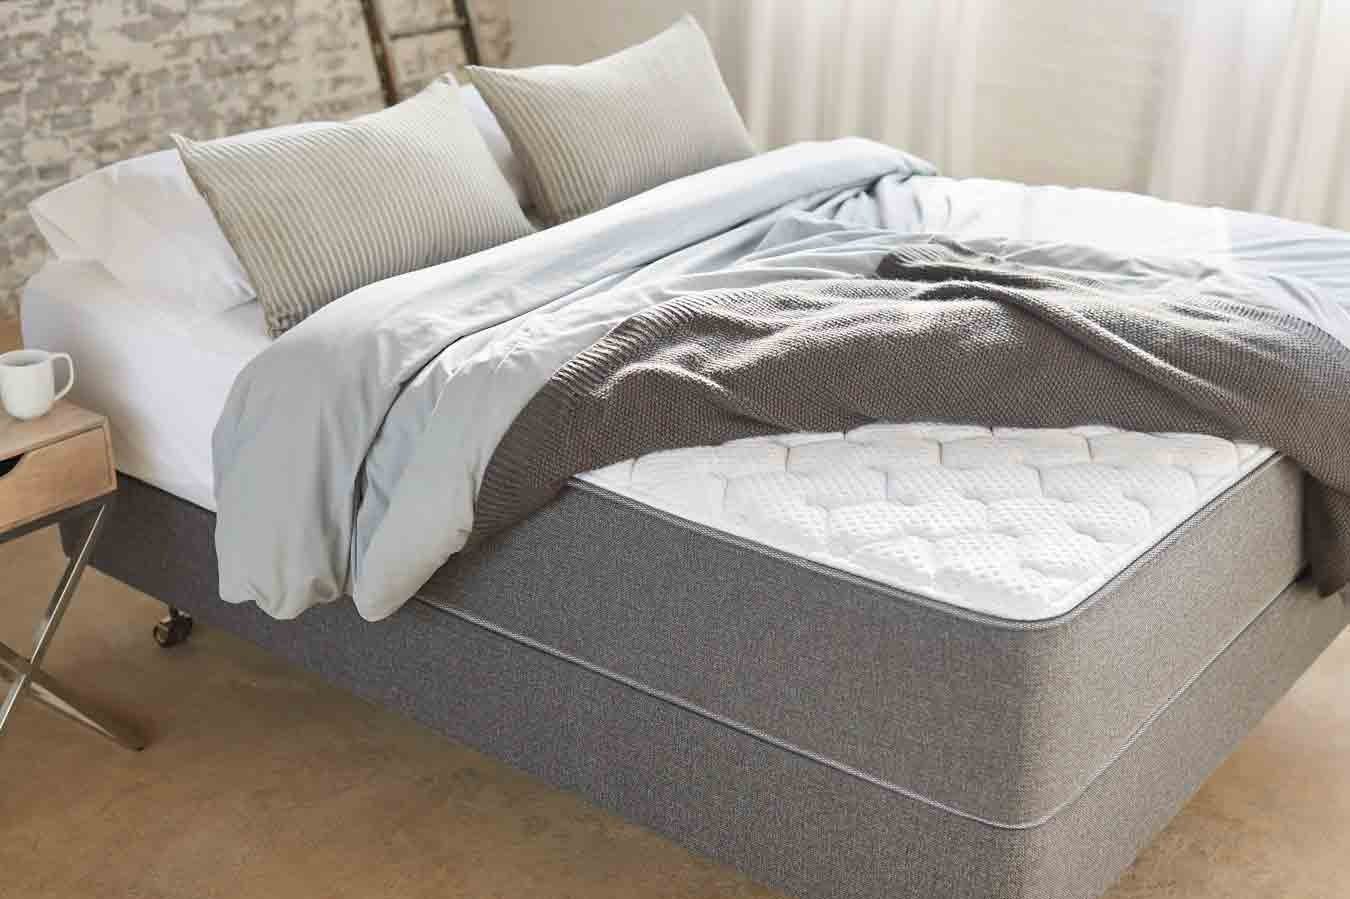 design pad foam density ip mattress memory comforter comfortable sleeping ergonomic high